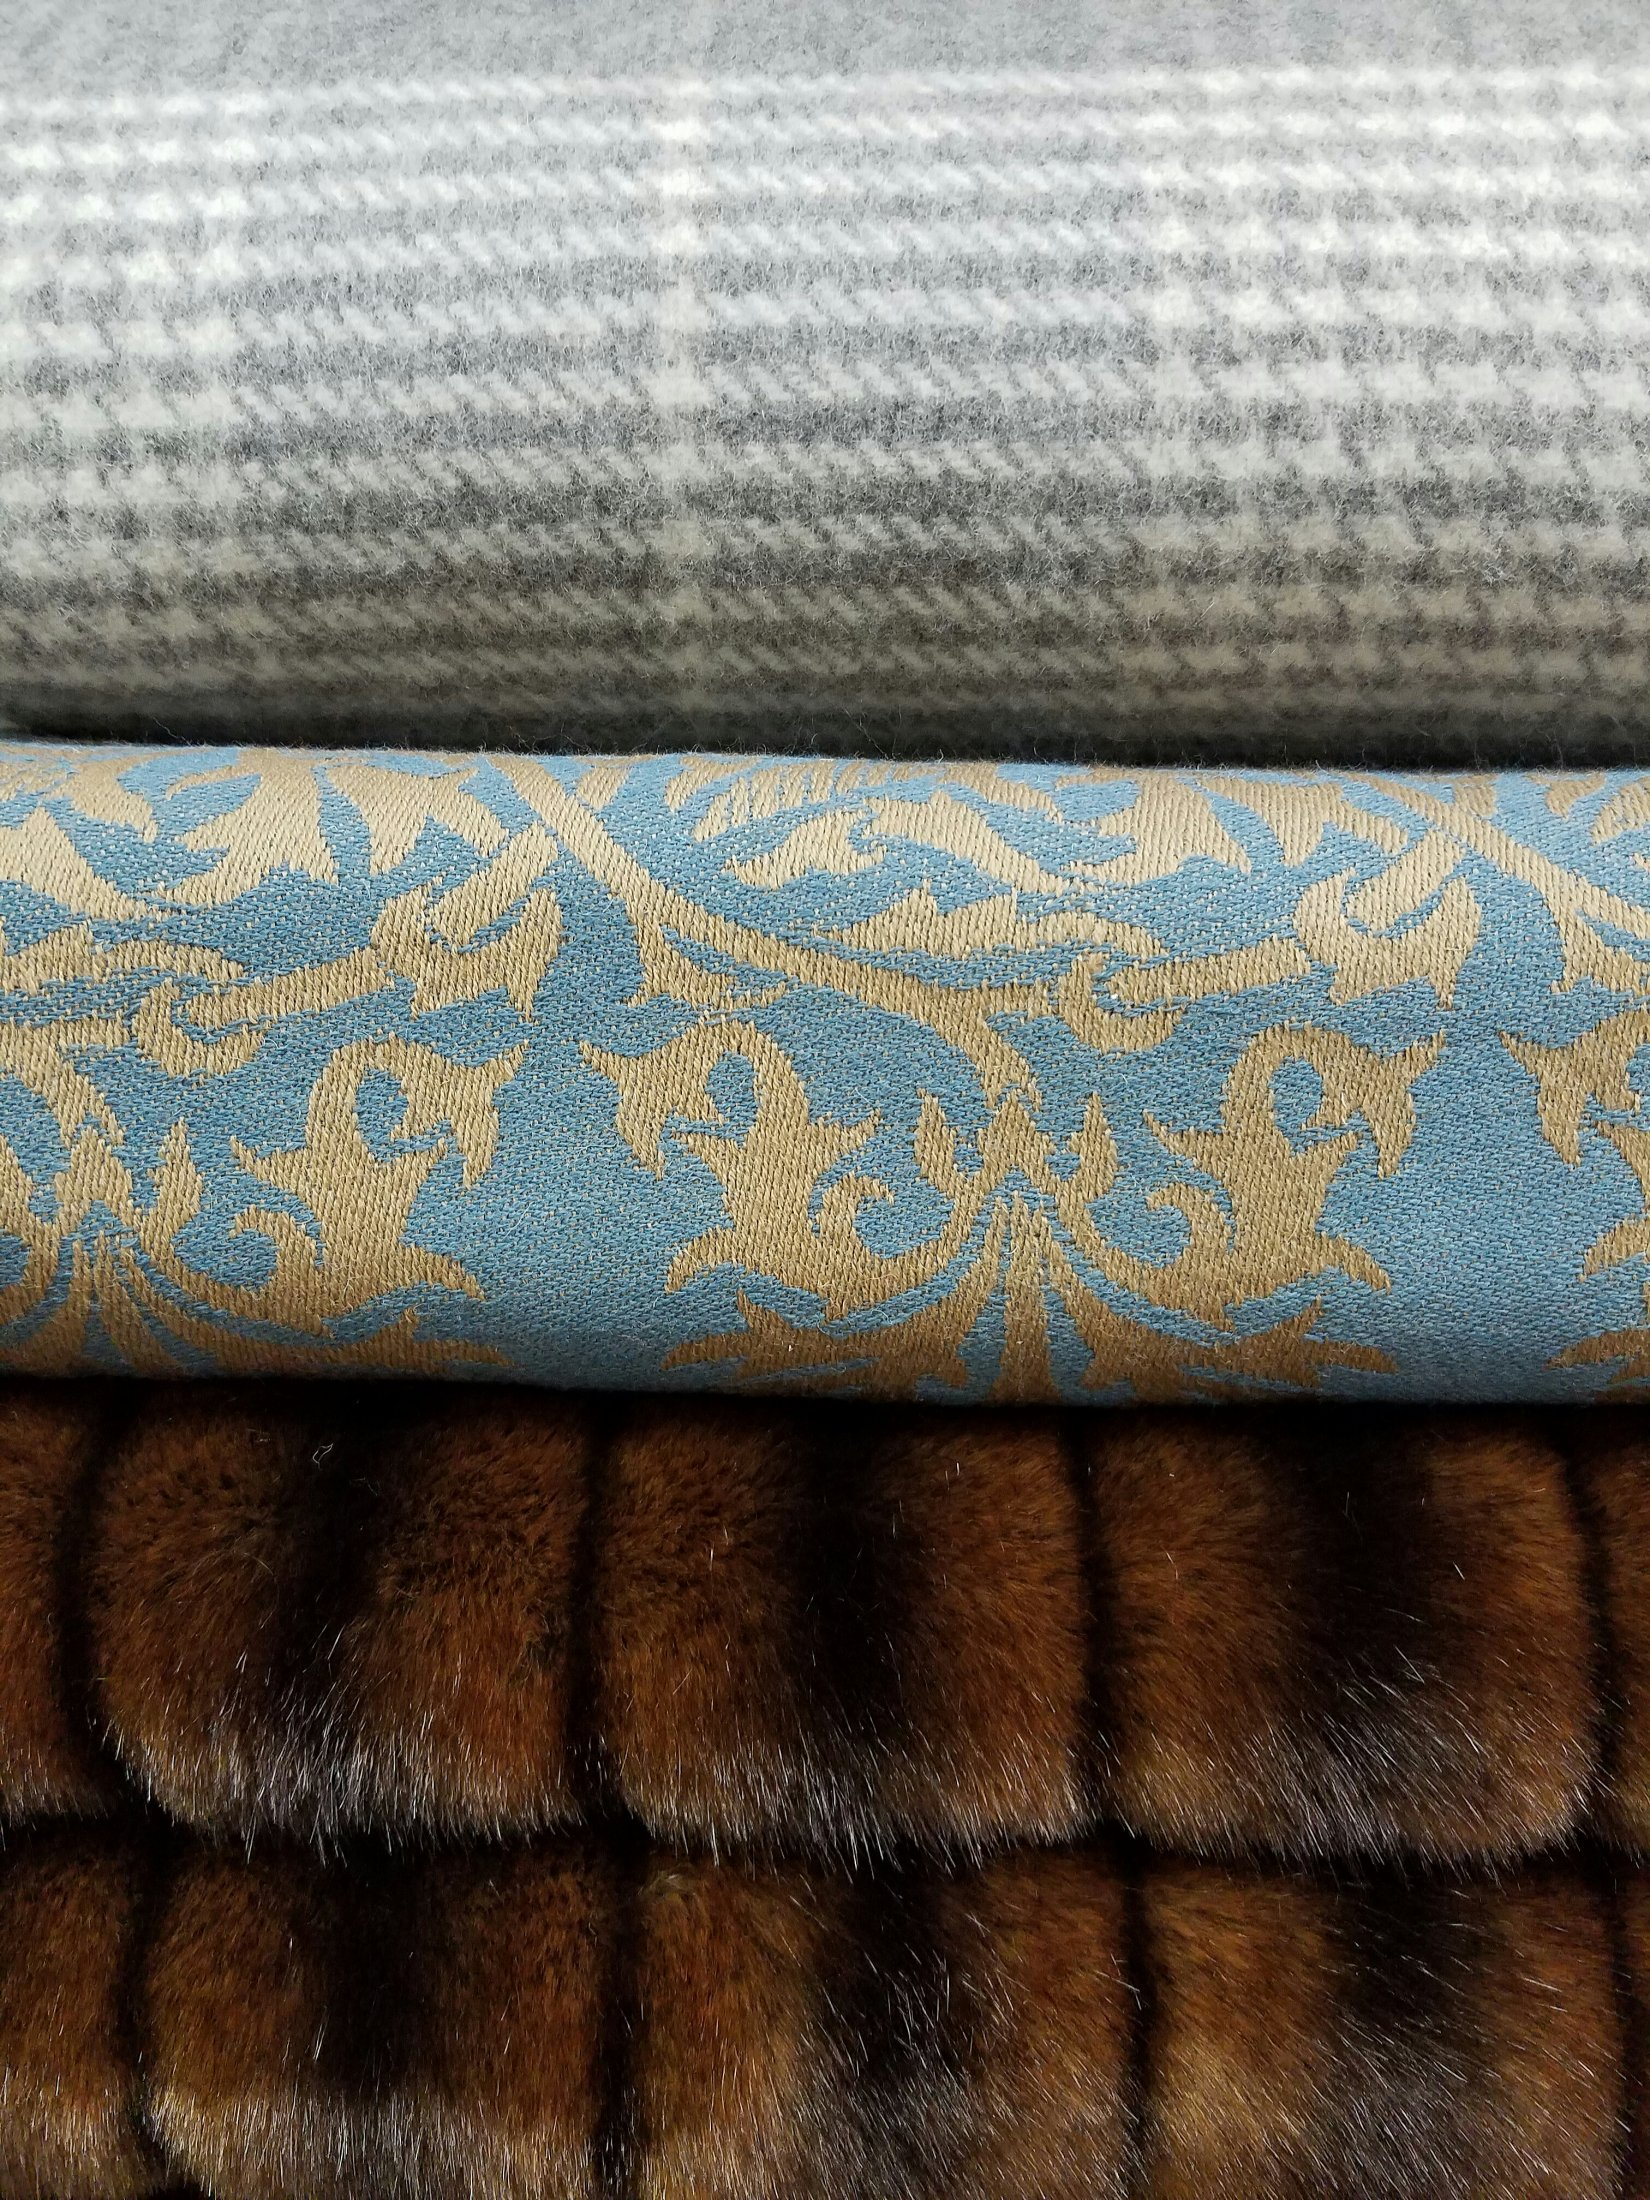 Cashmere(Top), Merino Wool(Middle), Faux Fur Throws(Bottom)